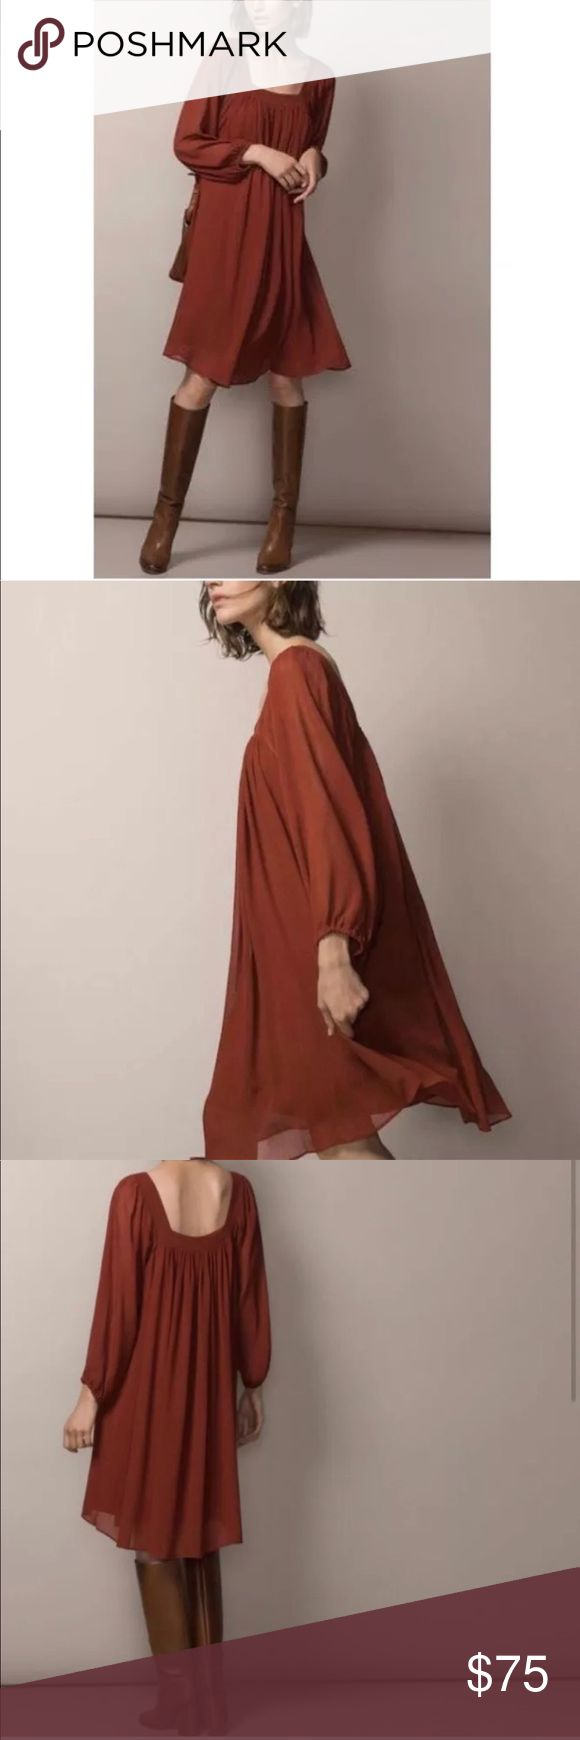 """NWT Massimo Dutti Terracotta Brick Peasant Dress Great flowy loose-fitting dress in beautiful terracotta color. Wear year round with boots or sandals. Size medium. Lined, sleeves are not lined. Has a brand tag but price tag is missing. About 21"""" underarms, shoulder to hem-37"""" Massimo Dutti Dresses Long Sleeve"""